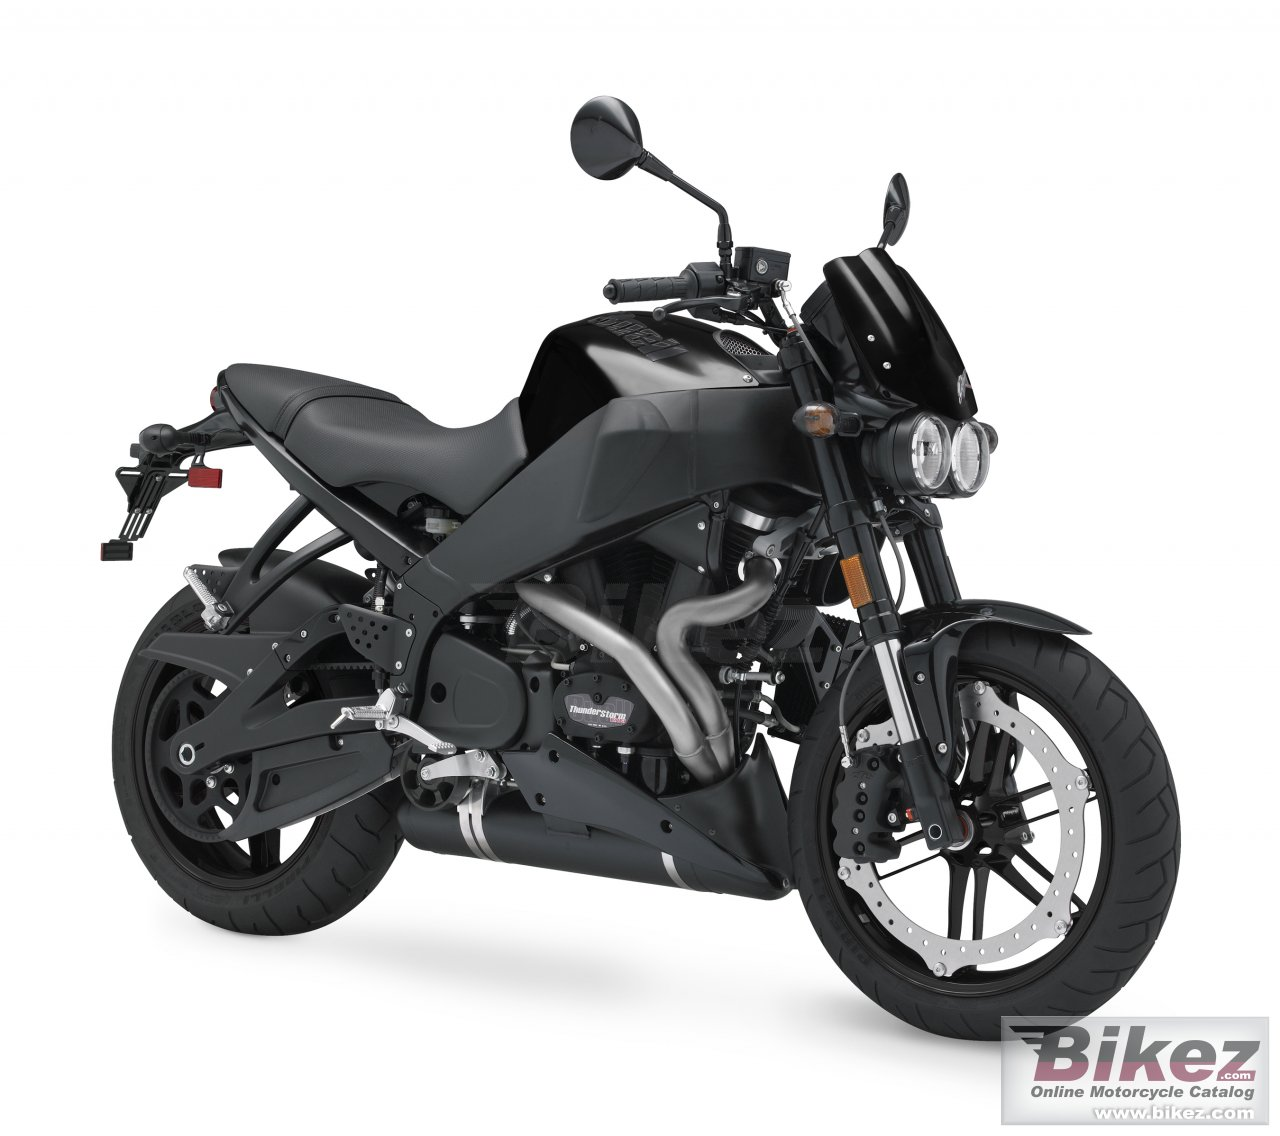 Big Buell lightning long xb12ss picture and wallpaper from Bikez.com